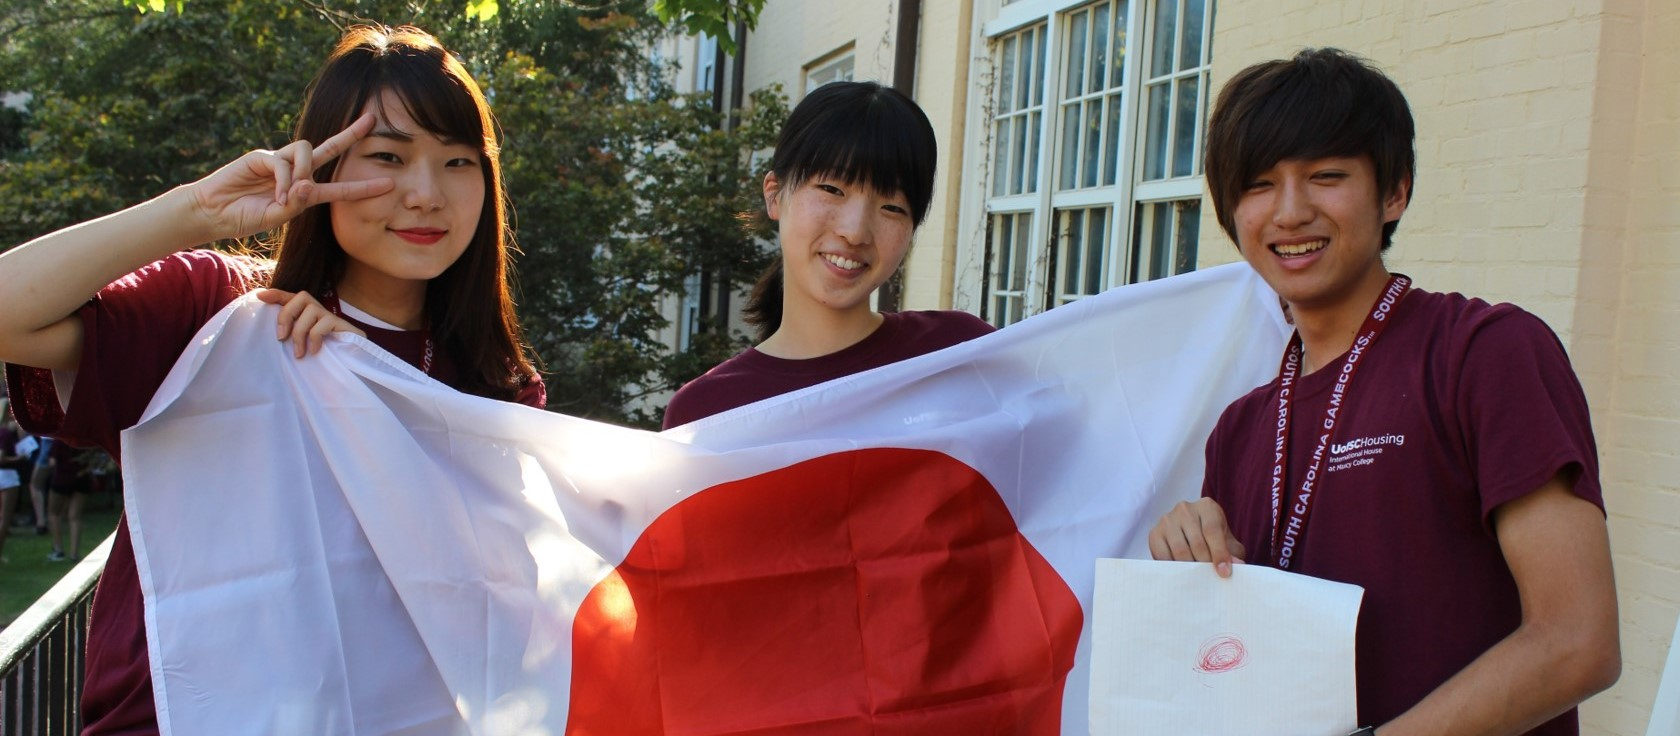 Japanese students with their flag